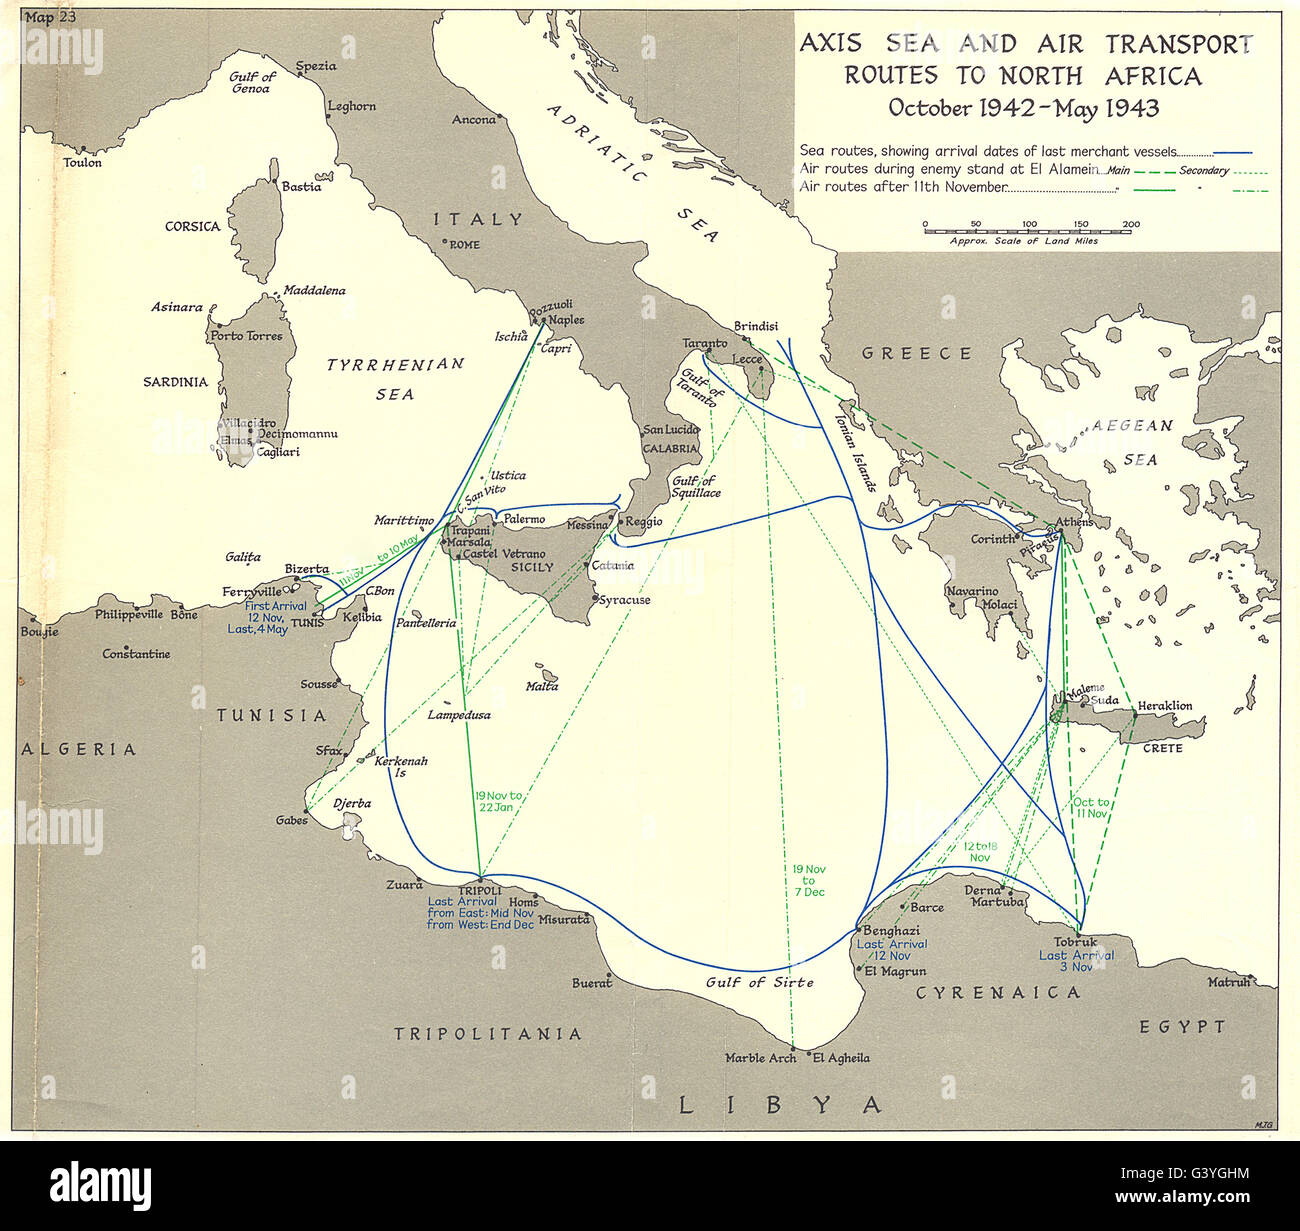 Mediterranean Axis Sea Air Transport Routes N Africa Oct 1942 May